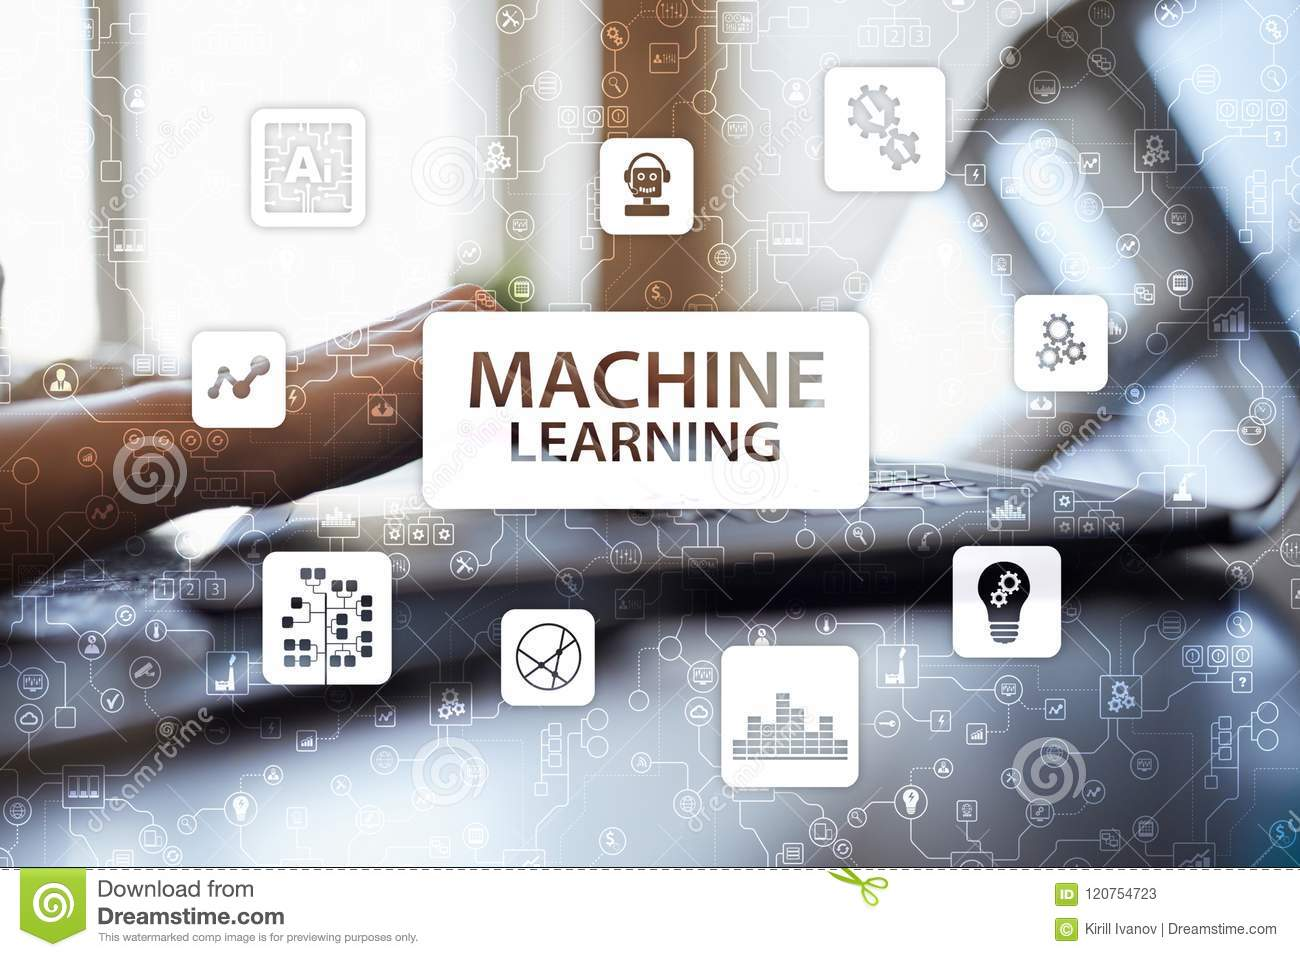 Machine Learning. Text and icons on virtual screen. Business, internet and technology concept.